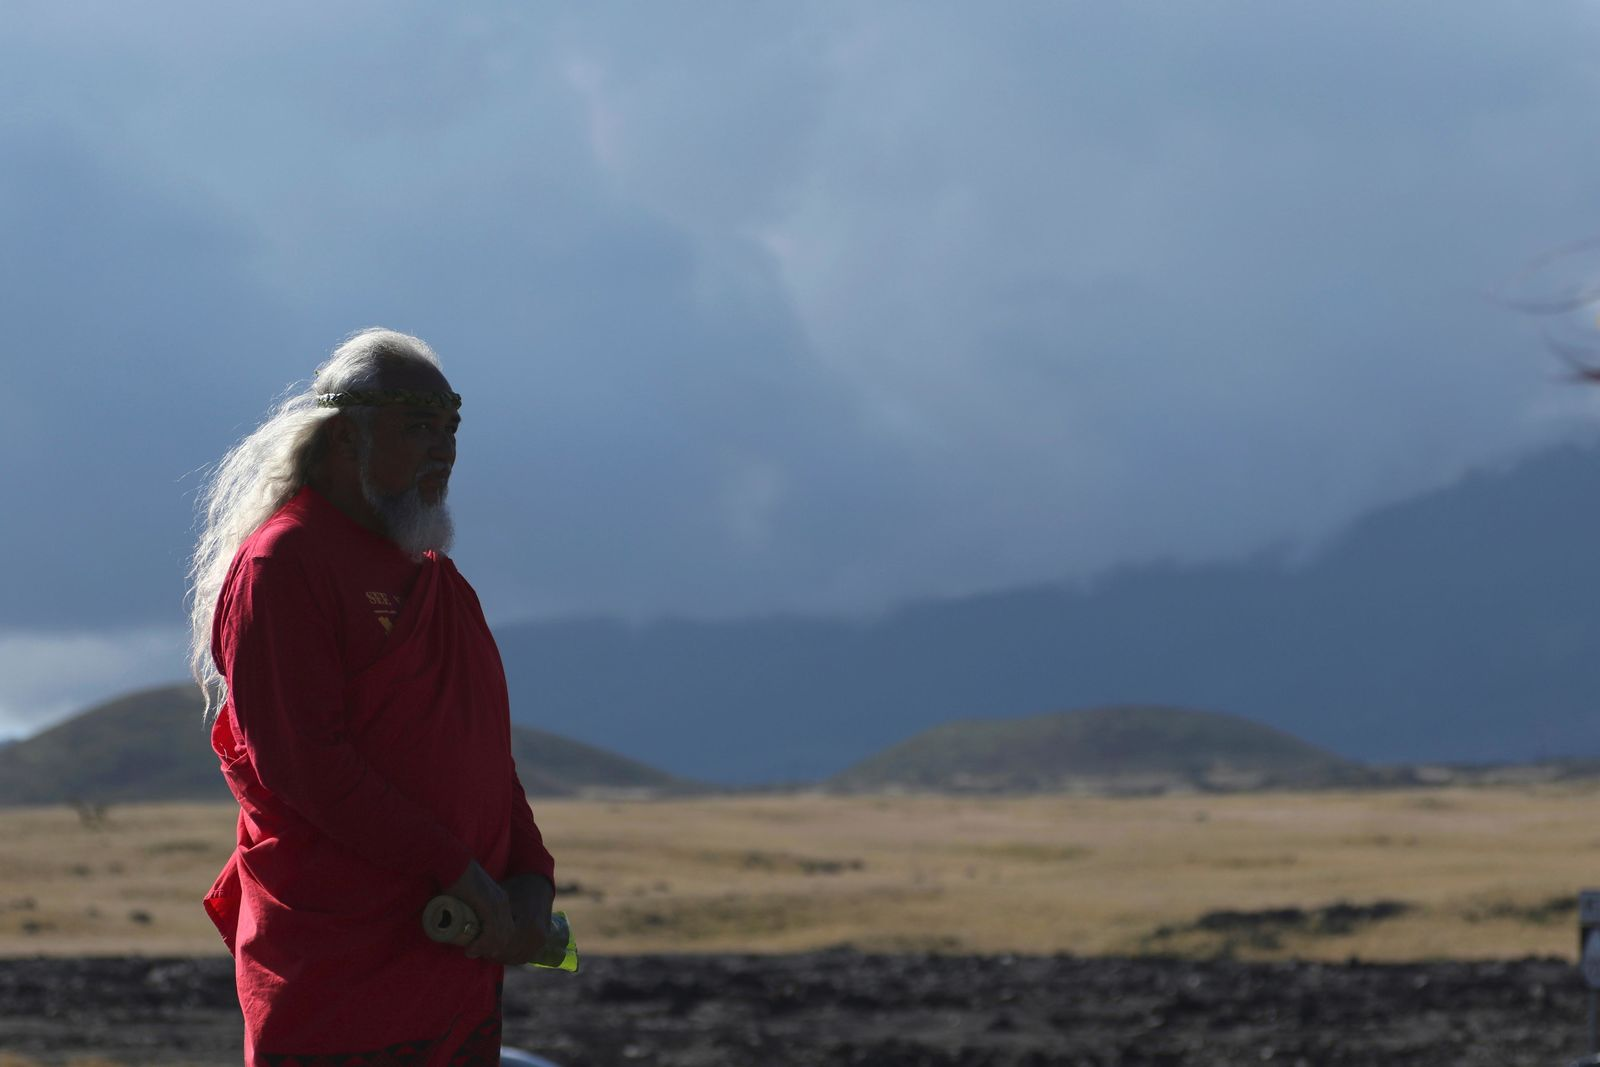 A native Hawaiian activist prays at the base of Hawaii's Mauna Kea on Sunday, July 14, 2019. Hundreds of demonstrators gathered at the base of Hawaii's tallest mountain to protest the construction of a giant telescope on land that some Native Hawaiians consider sacred. State and local officials will try to close the road to the summit of Mauna Kea Monday morning to allow trucks carrying construction equipment to make their way to the top. Officials say anyone breaking the law will be prosecuted. Protestors have blocked the roadway during previous attempts to begin construction and have been arrested. (AP Photo/Caleb Jones)